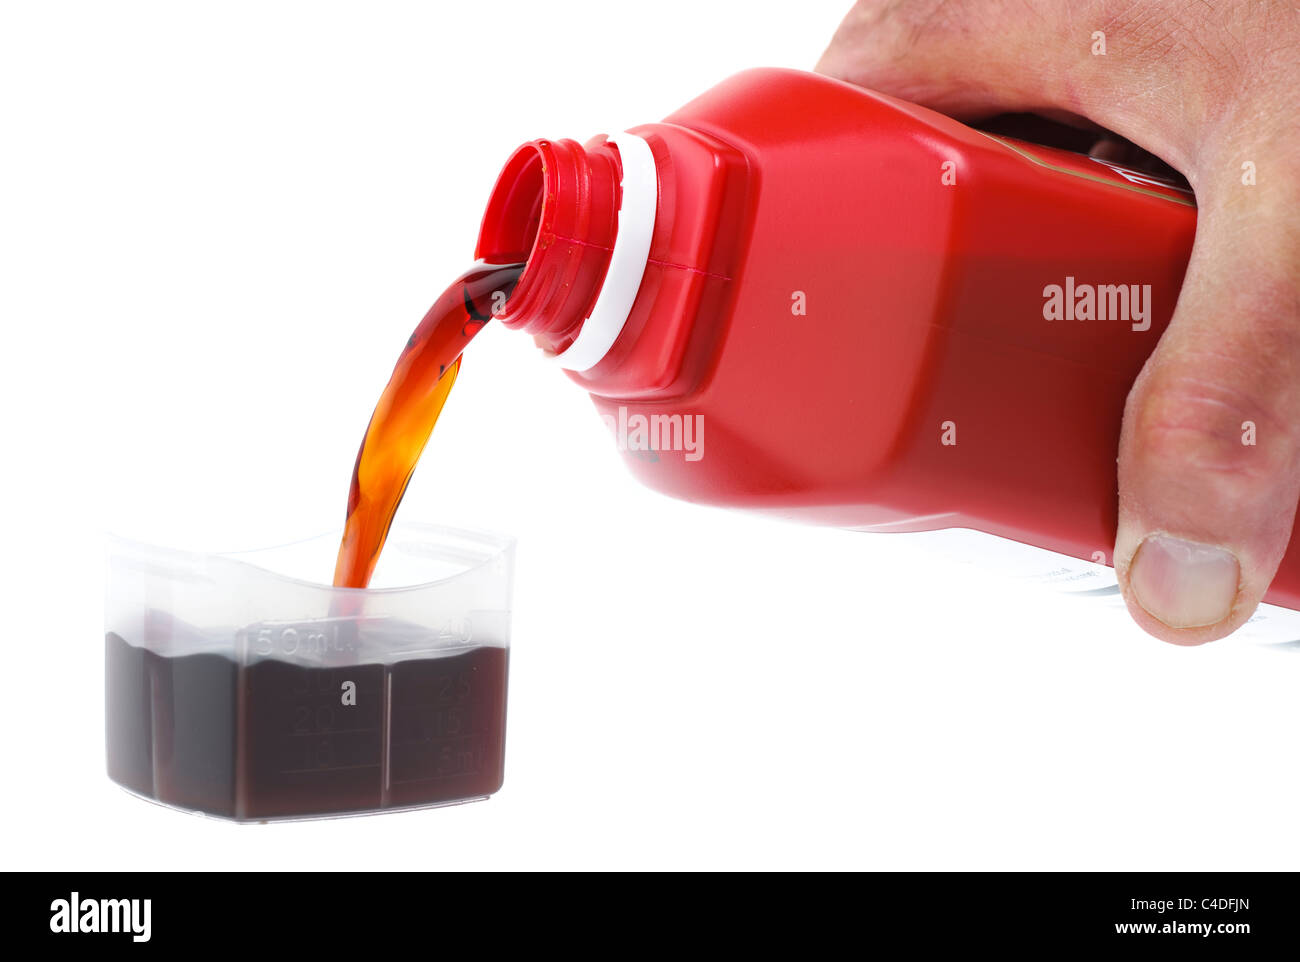 A 50 ml measure of tomato plant food being poured into a plastic measuring lid - Stock Image